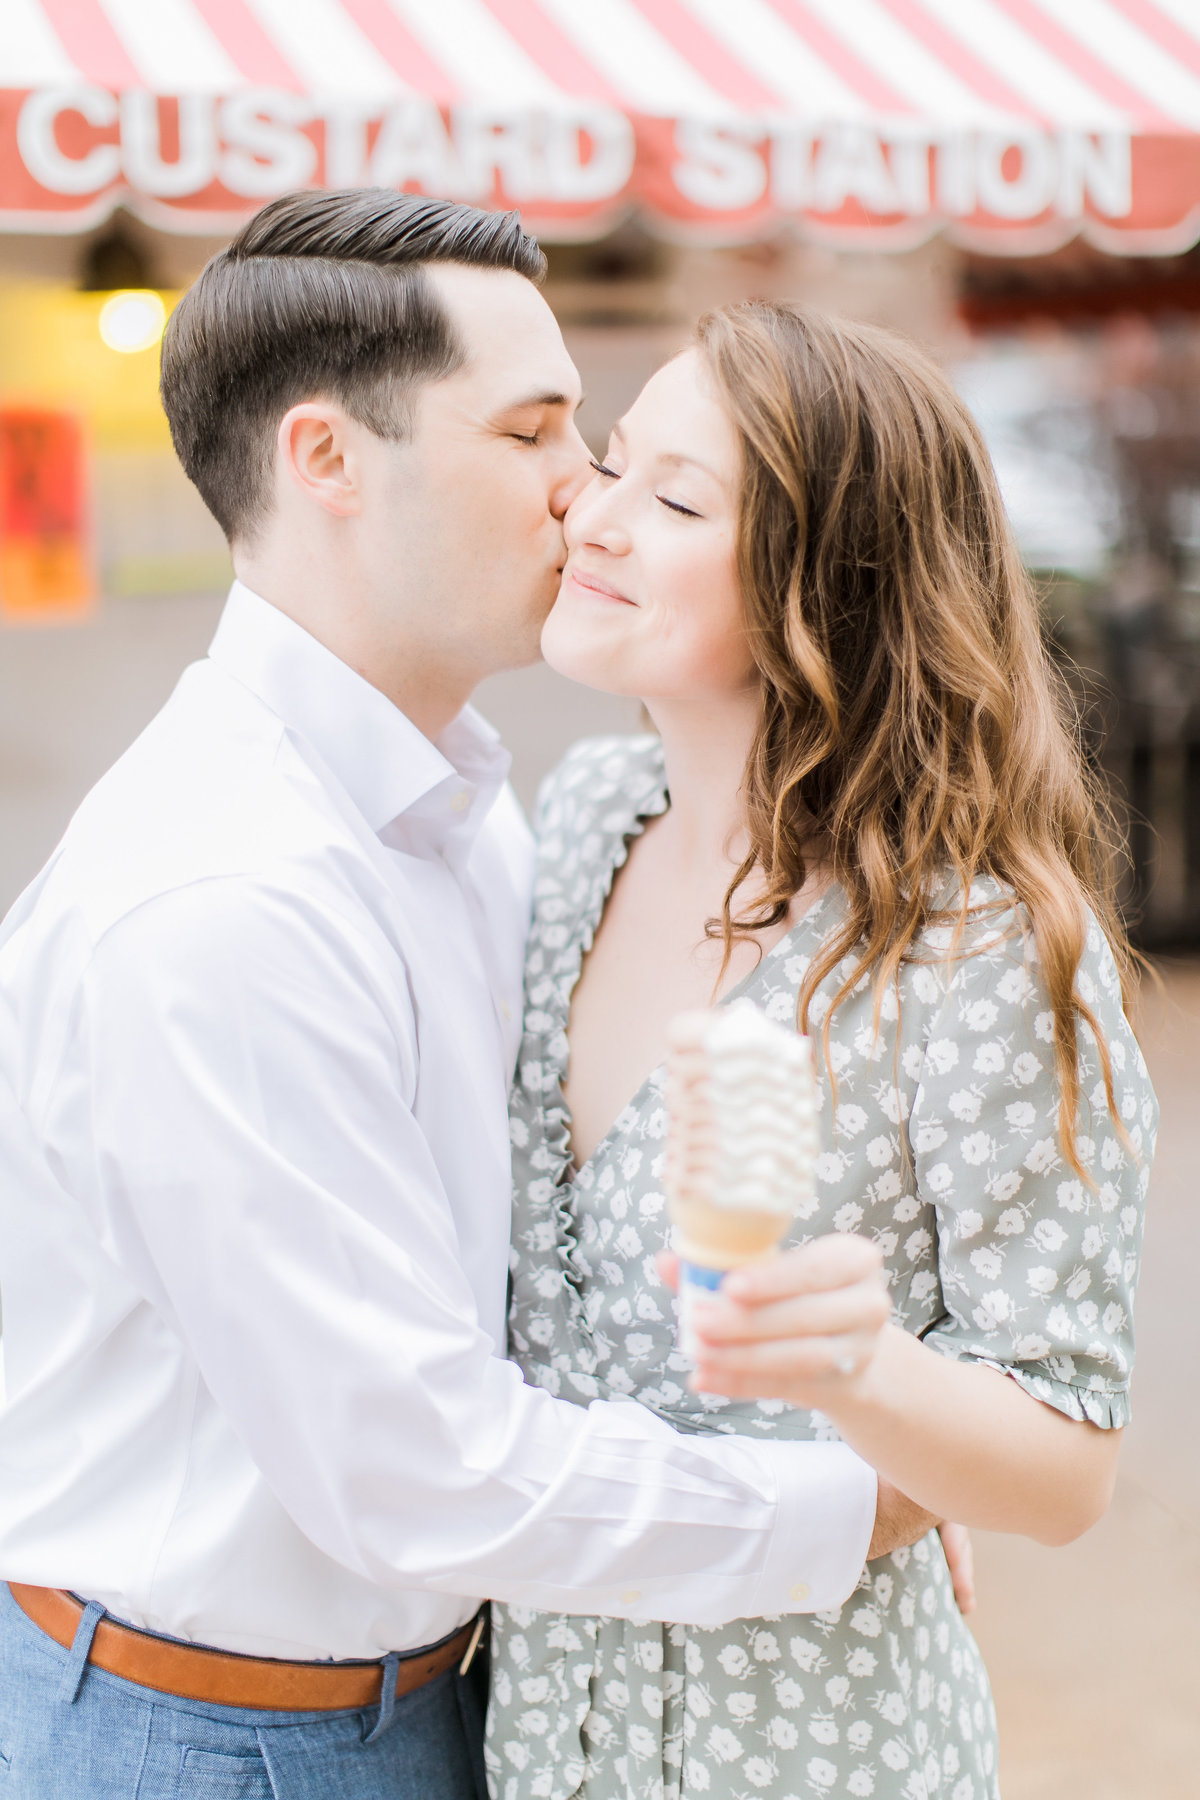 GenevieveMichael_KirkwoodEngagementSession_CatherineRhodesPhotography059-Edit